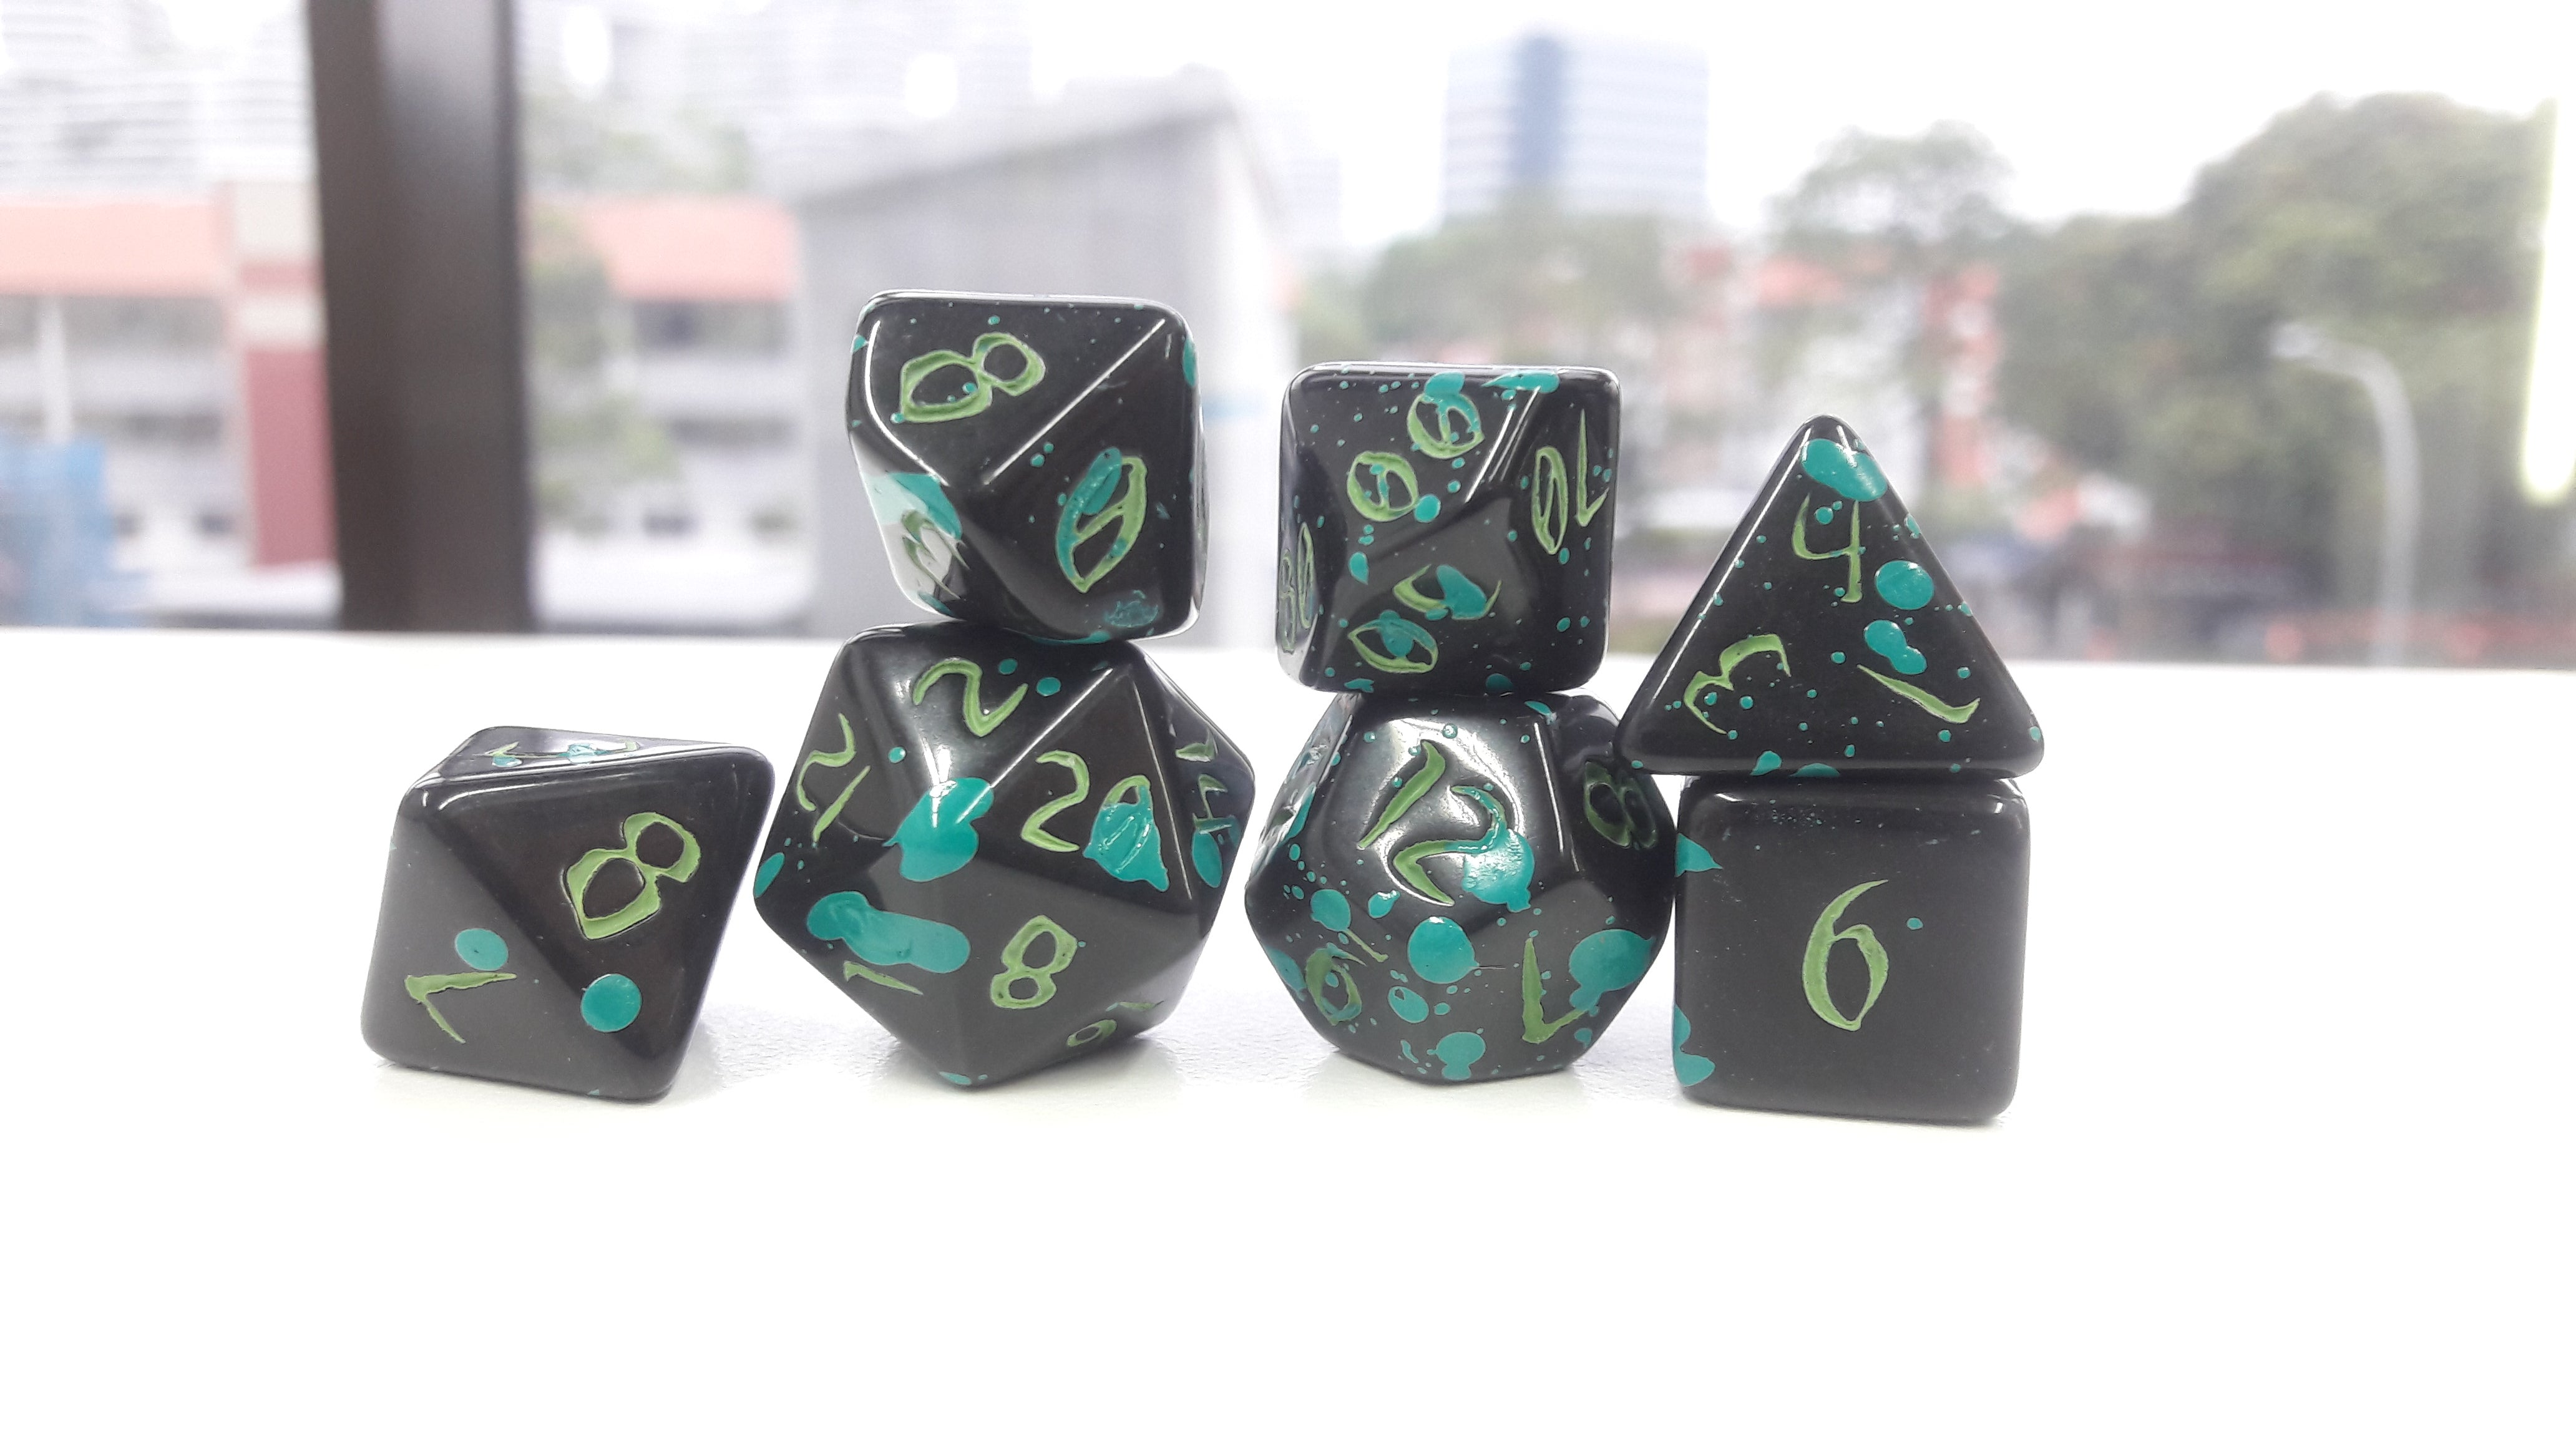 The Midnight Octopus - Primeval: Black and Teal with Green Ink 7pc Custom Font Polyhedral Dice Set - Kraken Dice | Sunny Pair'O'Dice